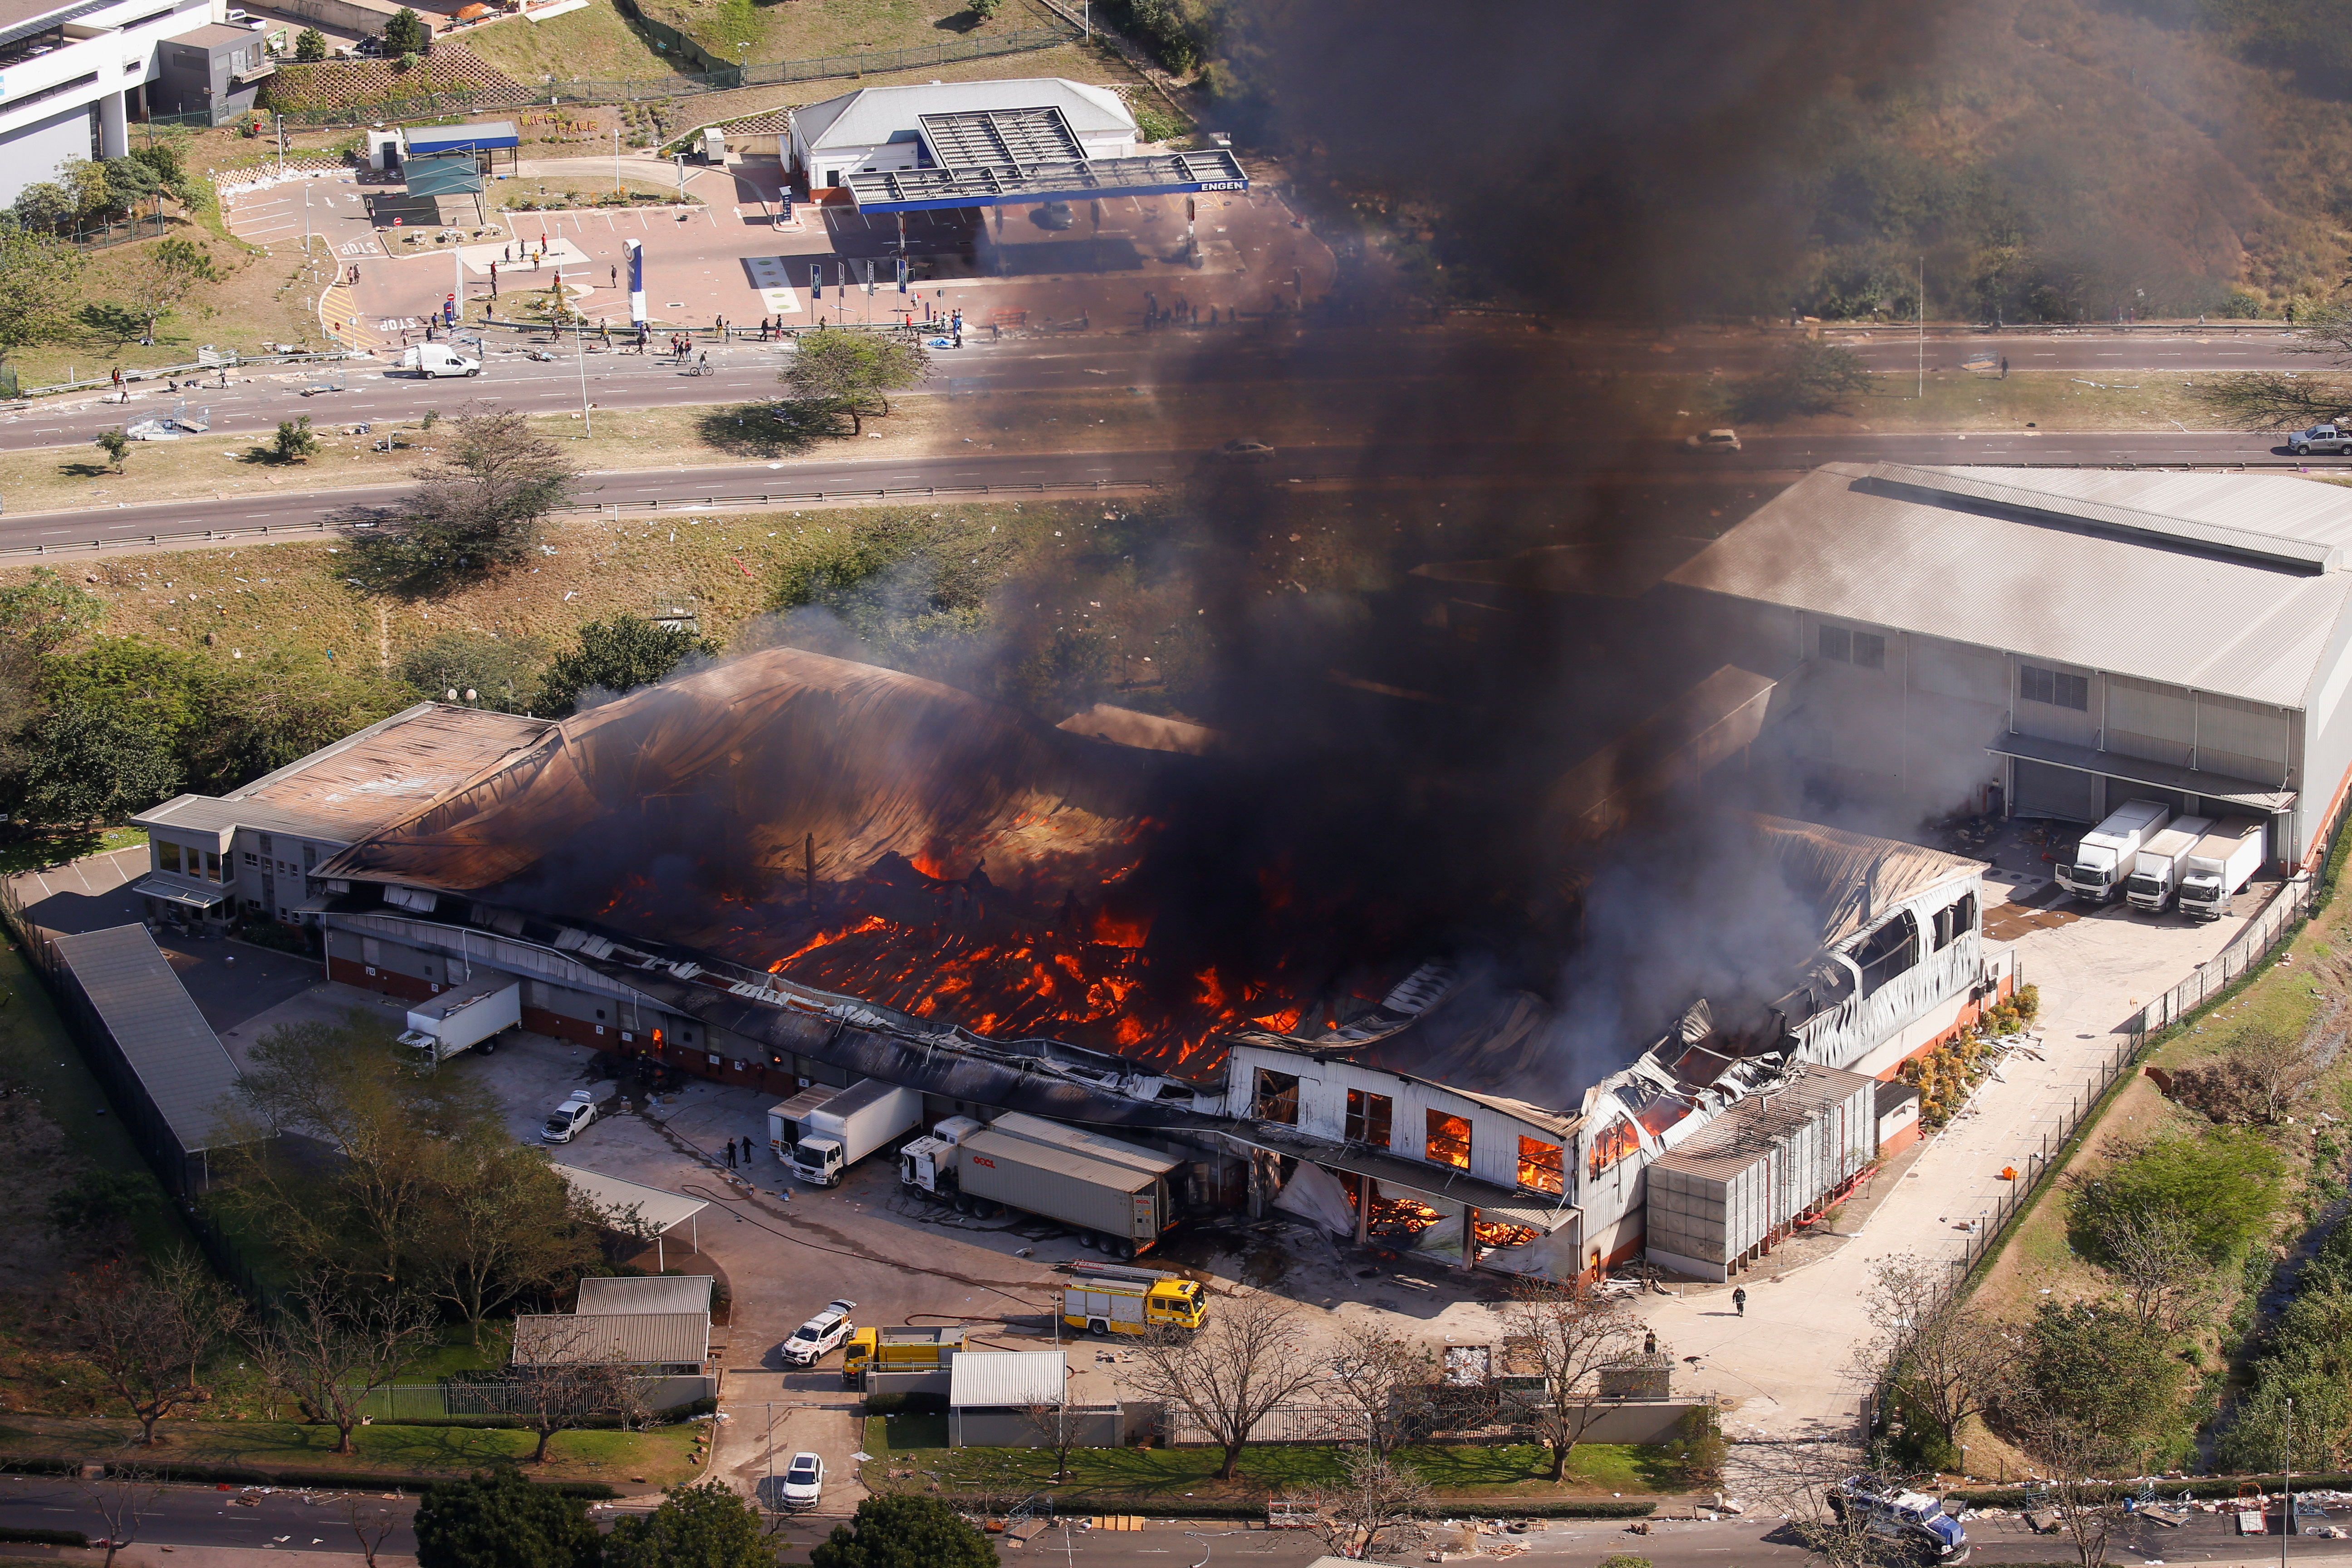 A general view of a burning warehouse after violence erupted following the jailing of former South African President Jacob Zuma, in Durban, South Africa, July 14, 2021. REUTERS/Rogan Ward